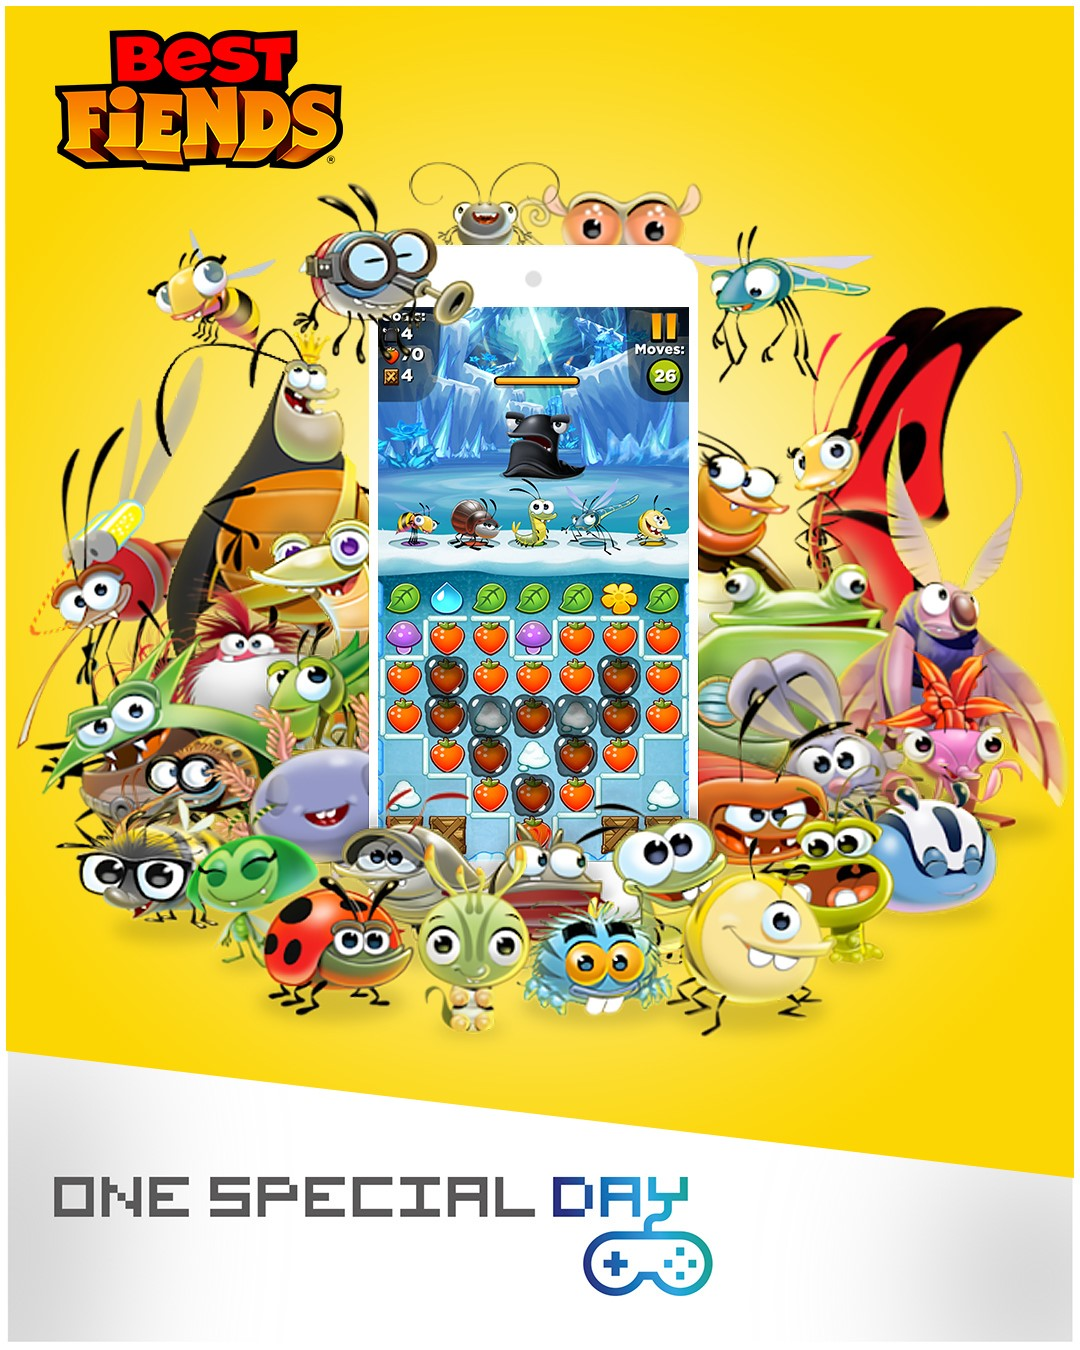 Cartoon characters from the Bset Fiends game and a One Special Day logo